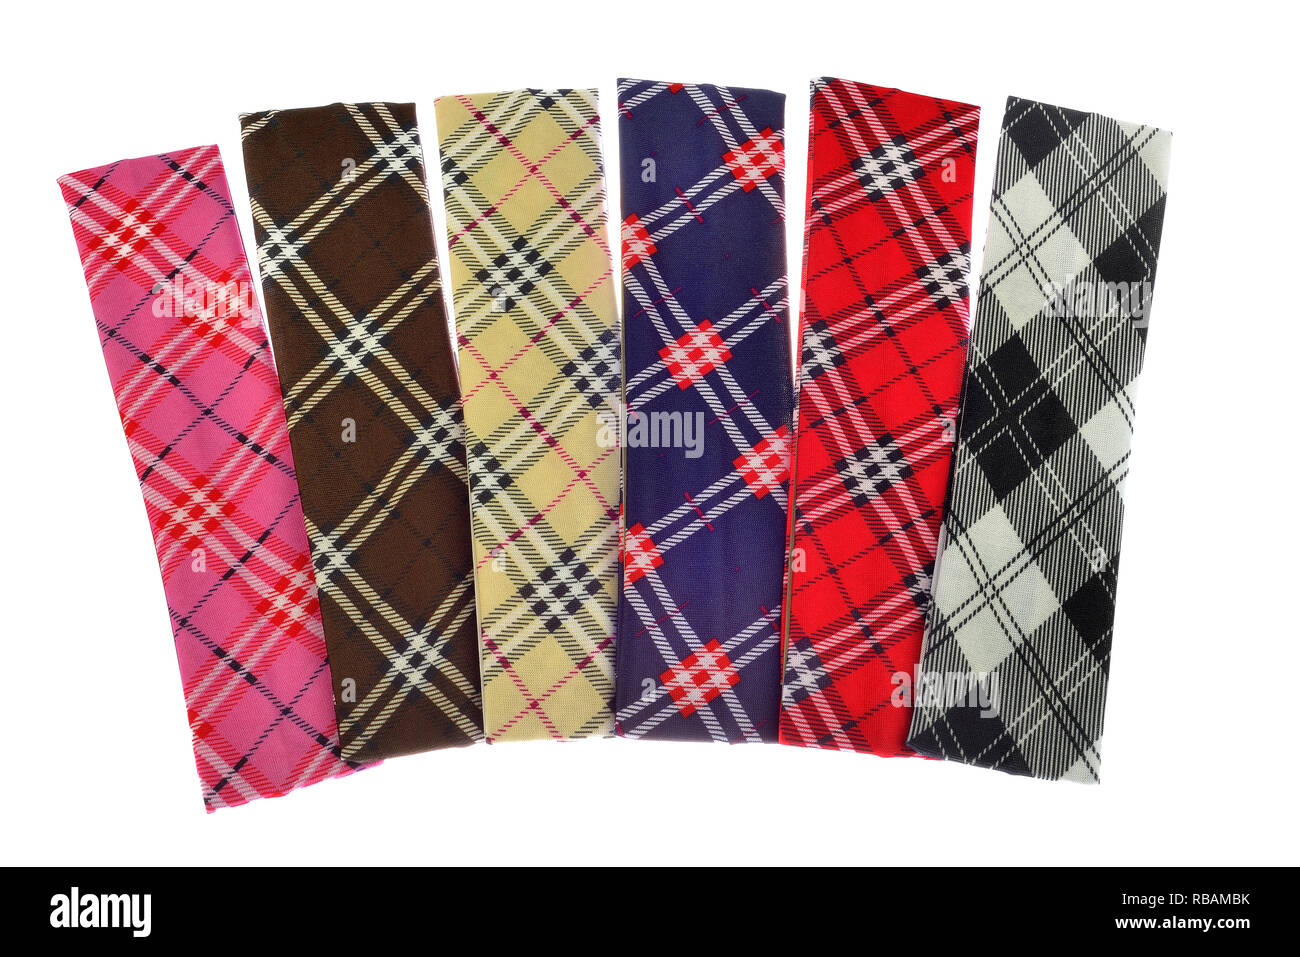 Lumberjack Plaid and Buffalo Check Patterns. Red, Black, White and Khaki Plaid, Tartan and Gingham Patterns. Trendy Hipster Style samples. - Stock Image